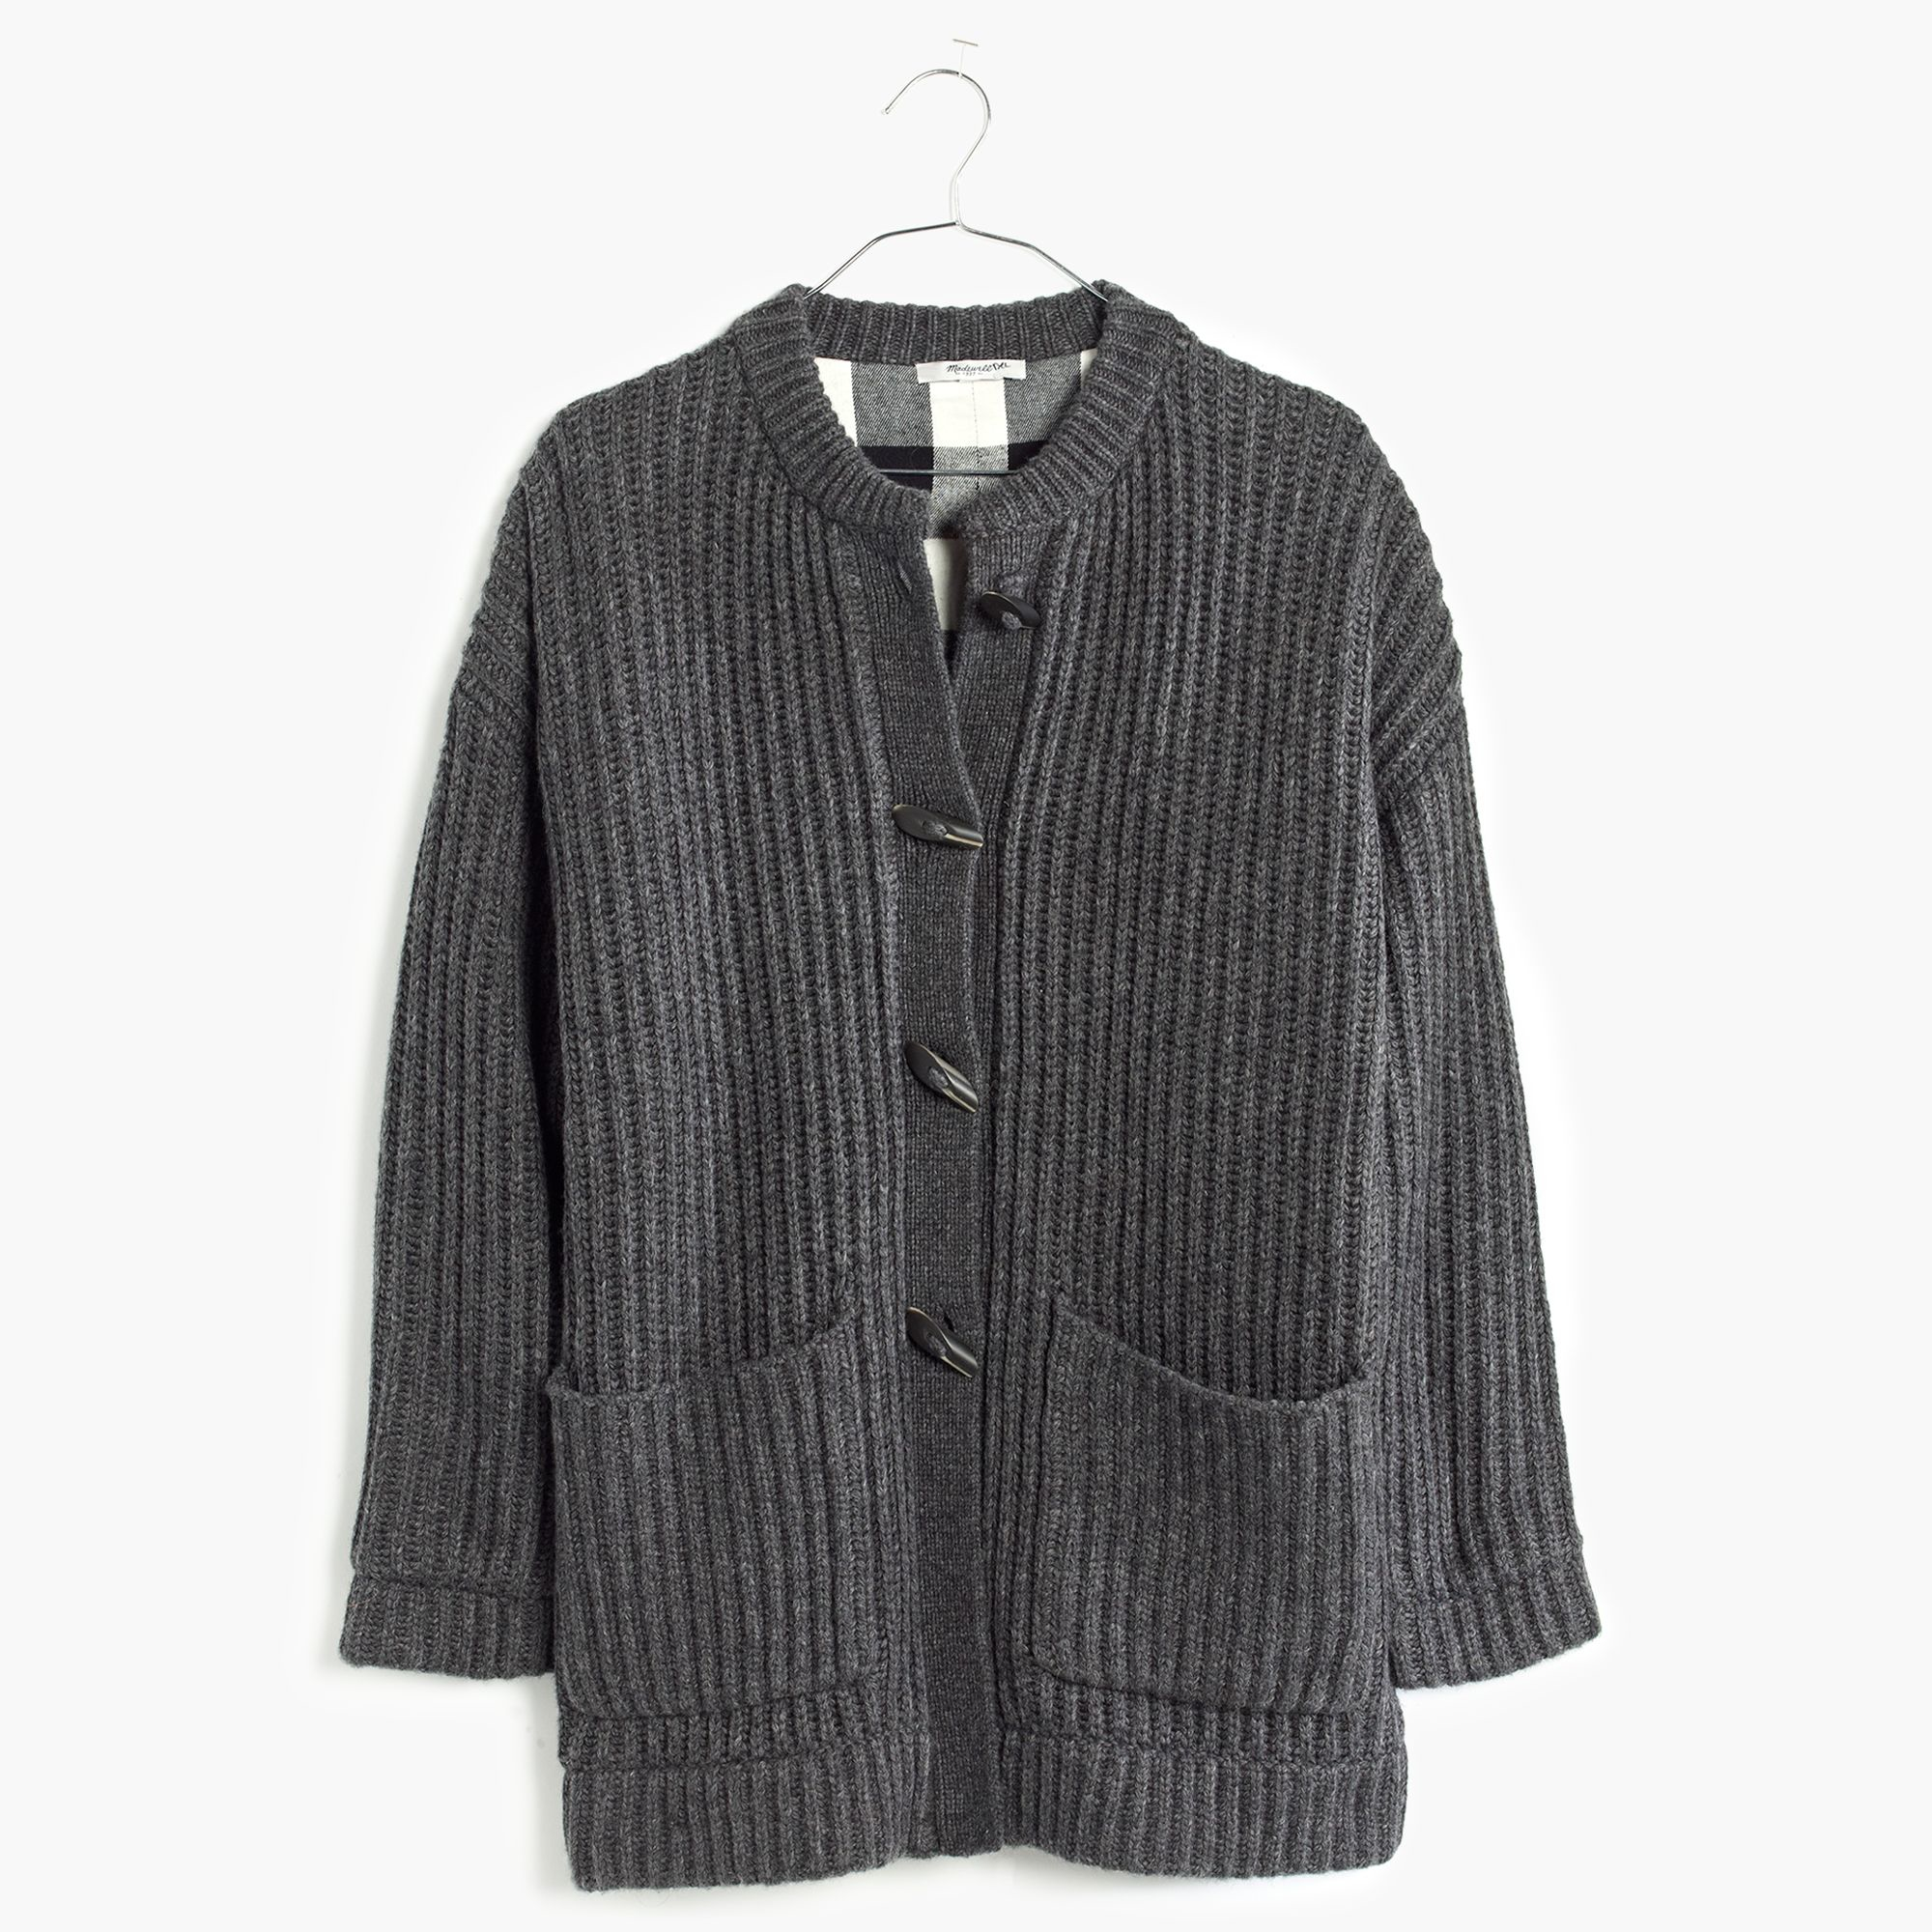 Madewell Plaid-lined Sweater-coat in Black | Lyst